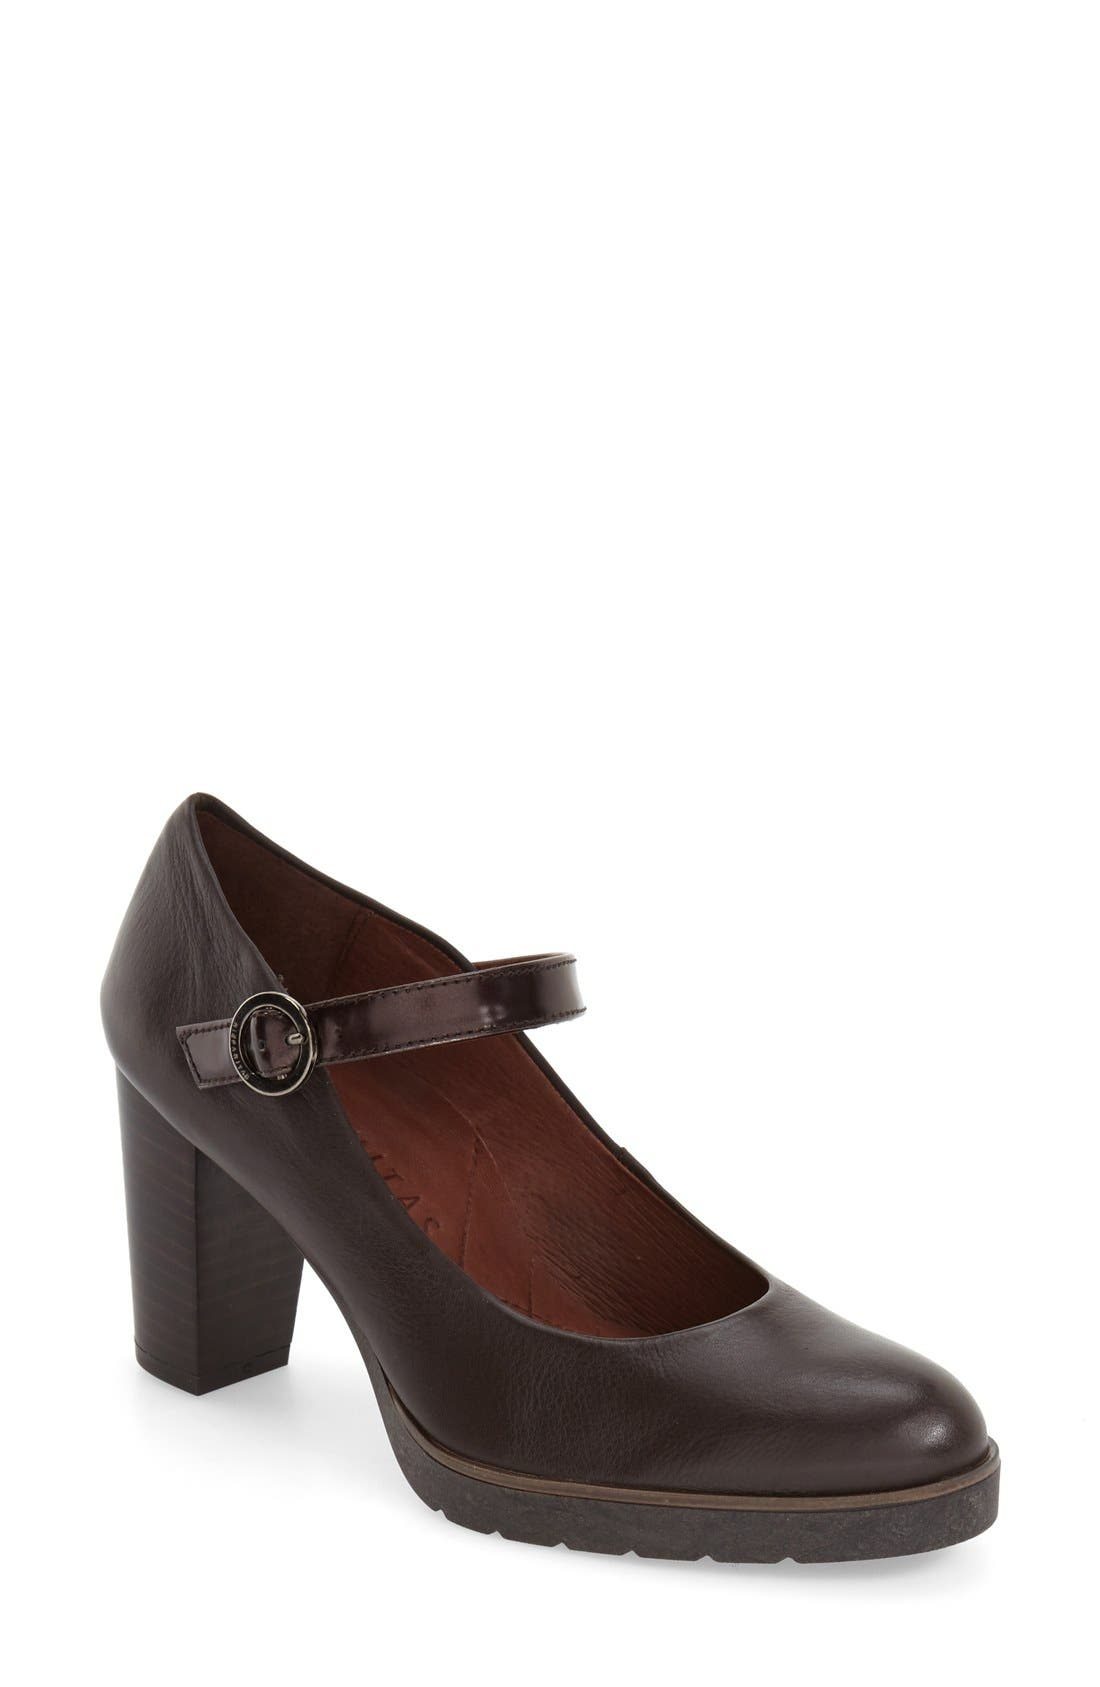 'Veda' Mary Jane Pump,                         Main,                         color, Brown Leather